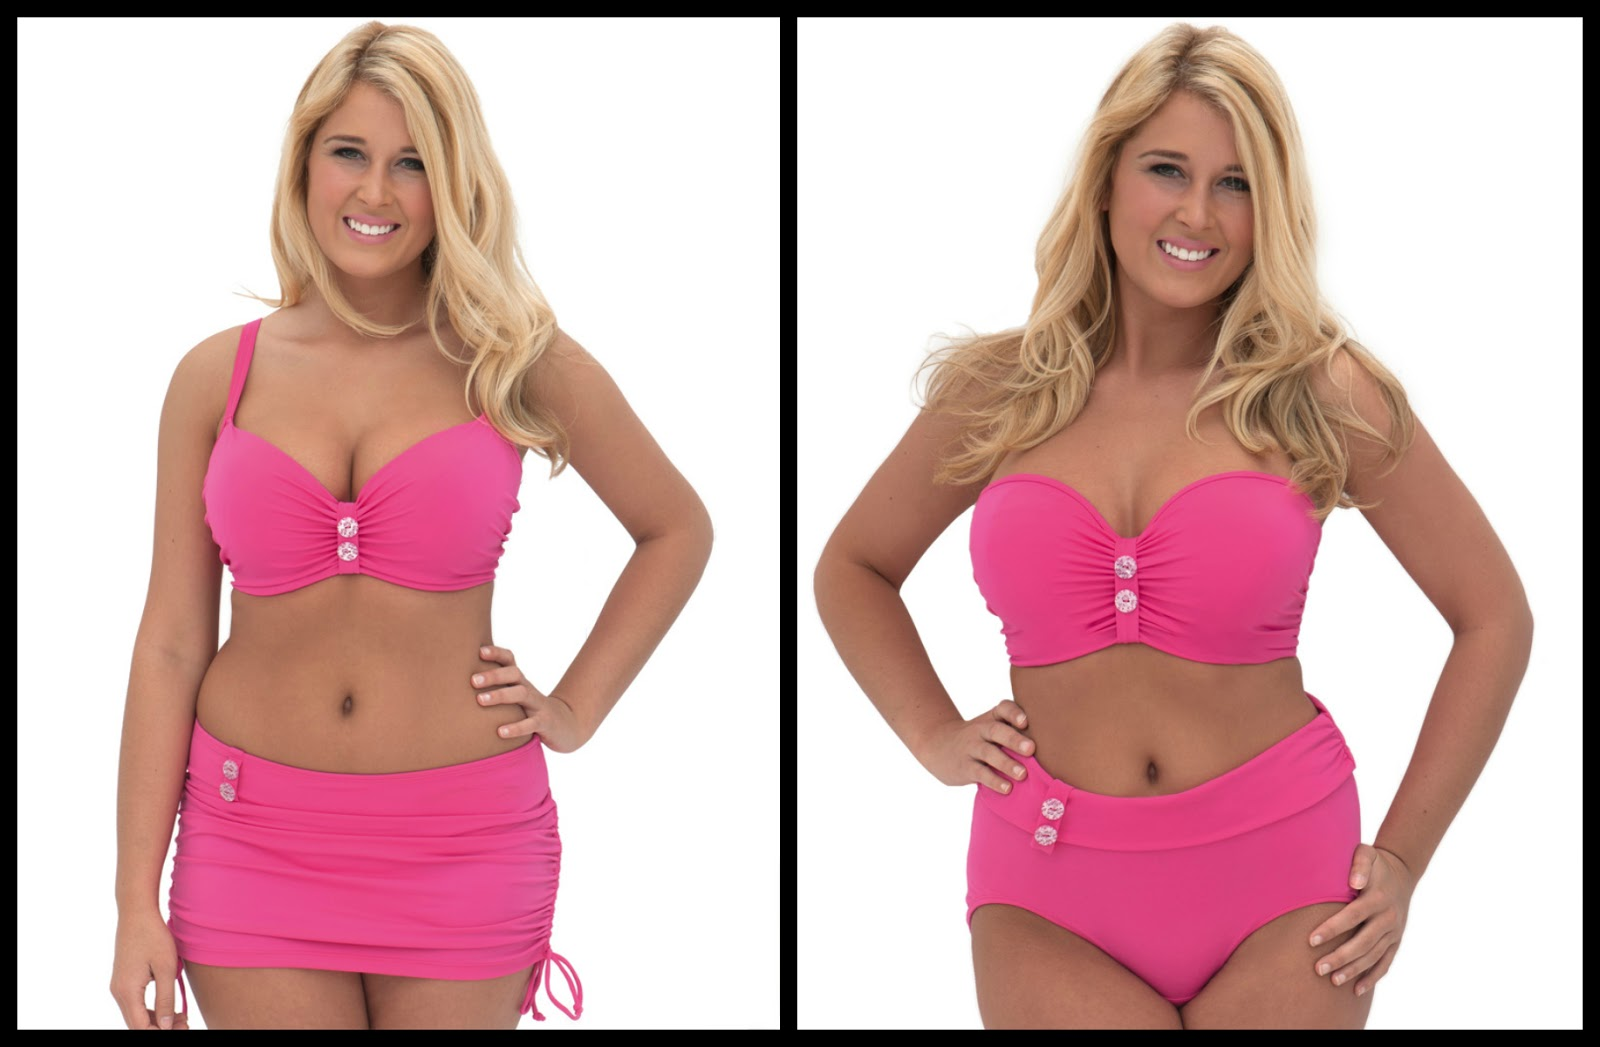 c72687b5c7090 Curvy Kate Luau Love Flamingo Pink Padded Bikini Top 34K and High ...